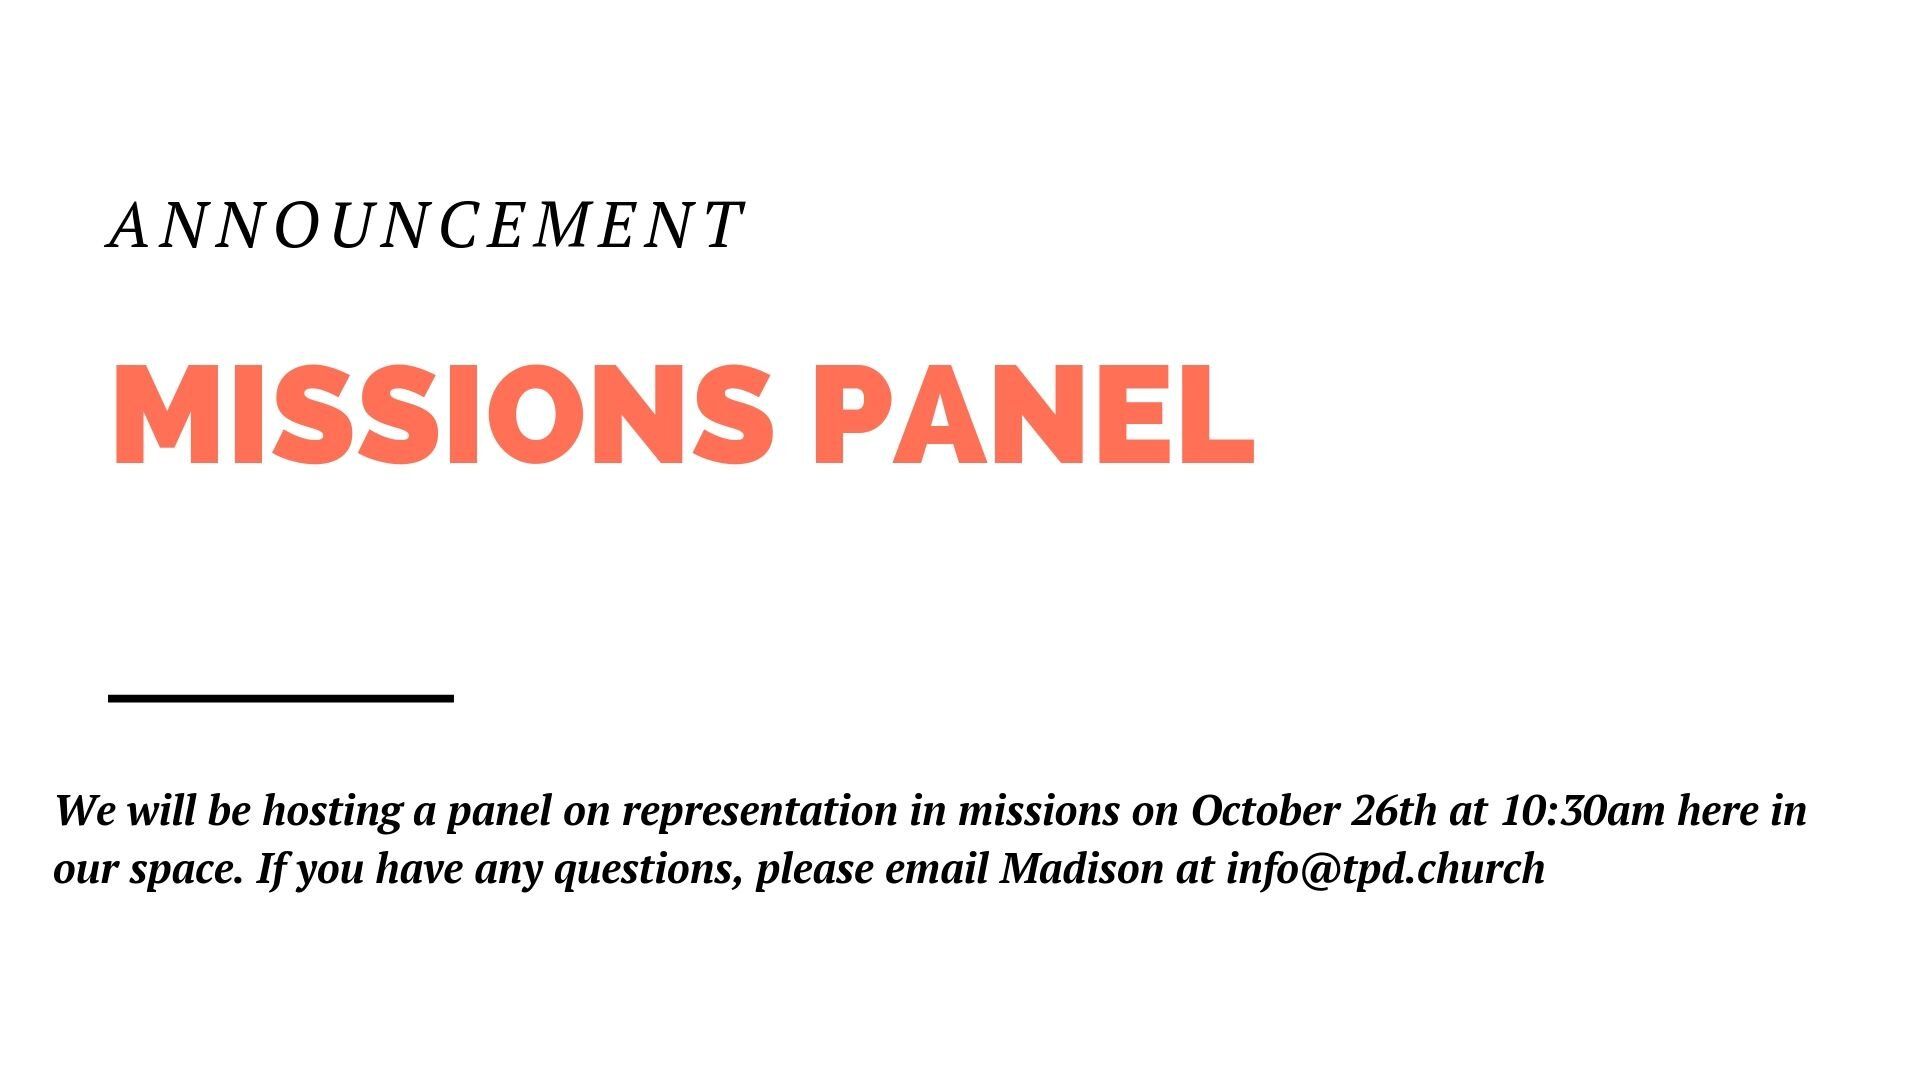 We will be hosting a panel on representation in missions on October 26th at 10:30am in our space. Email Madison at info@tpd.church if you have questions.